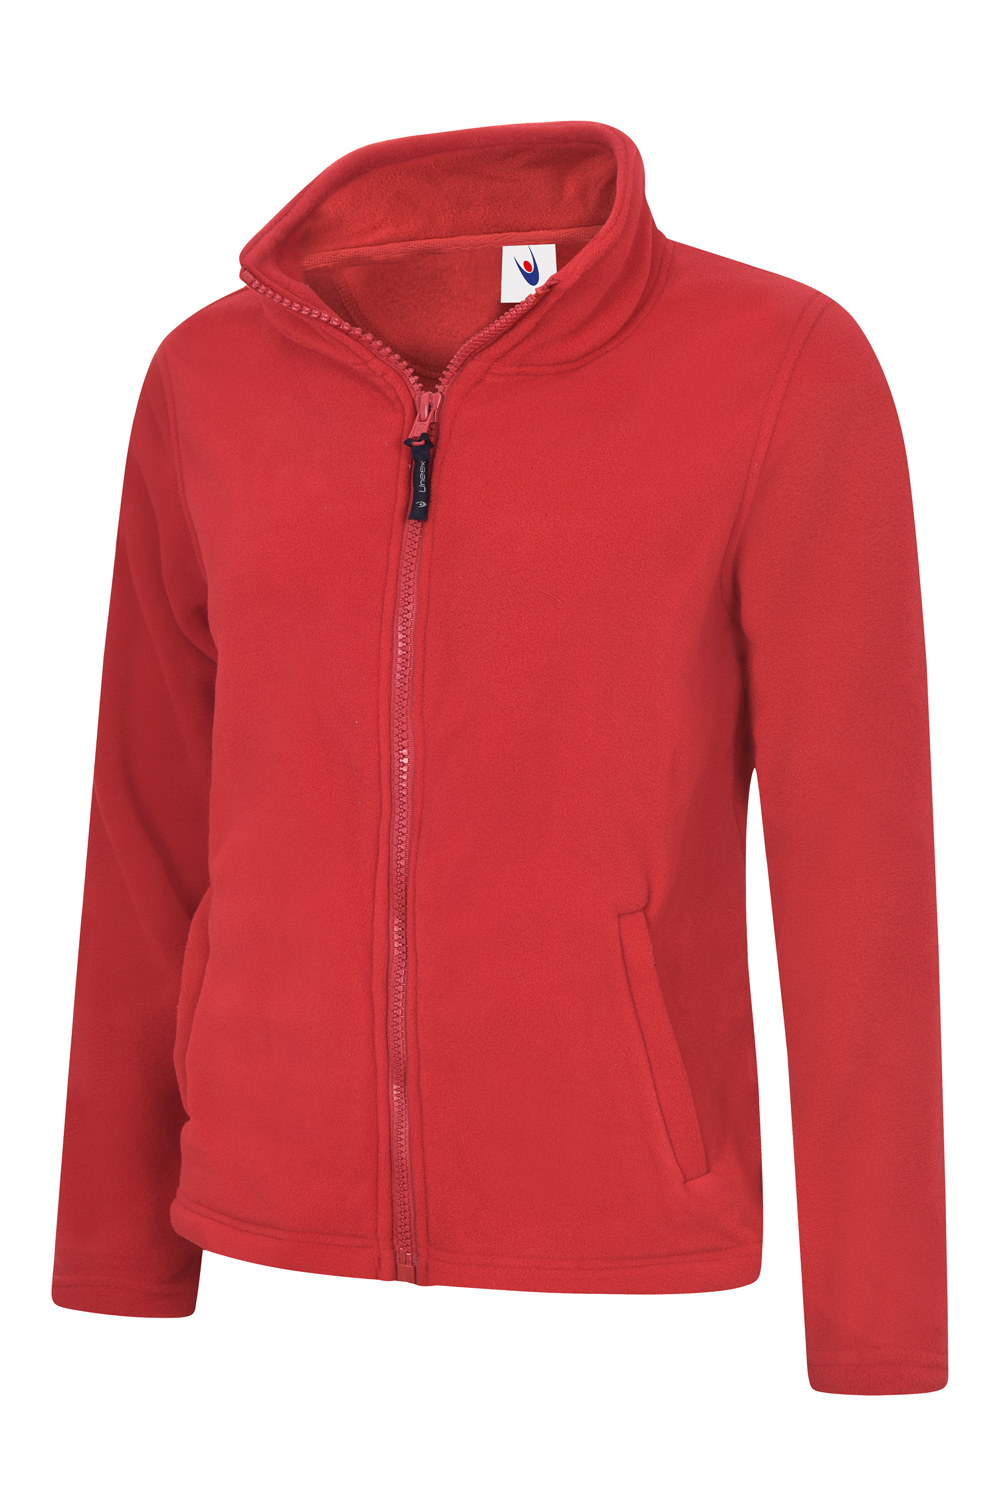 UNEEK UC608 LADIES CLASSIC FULL ZIP FLEECE JACKET